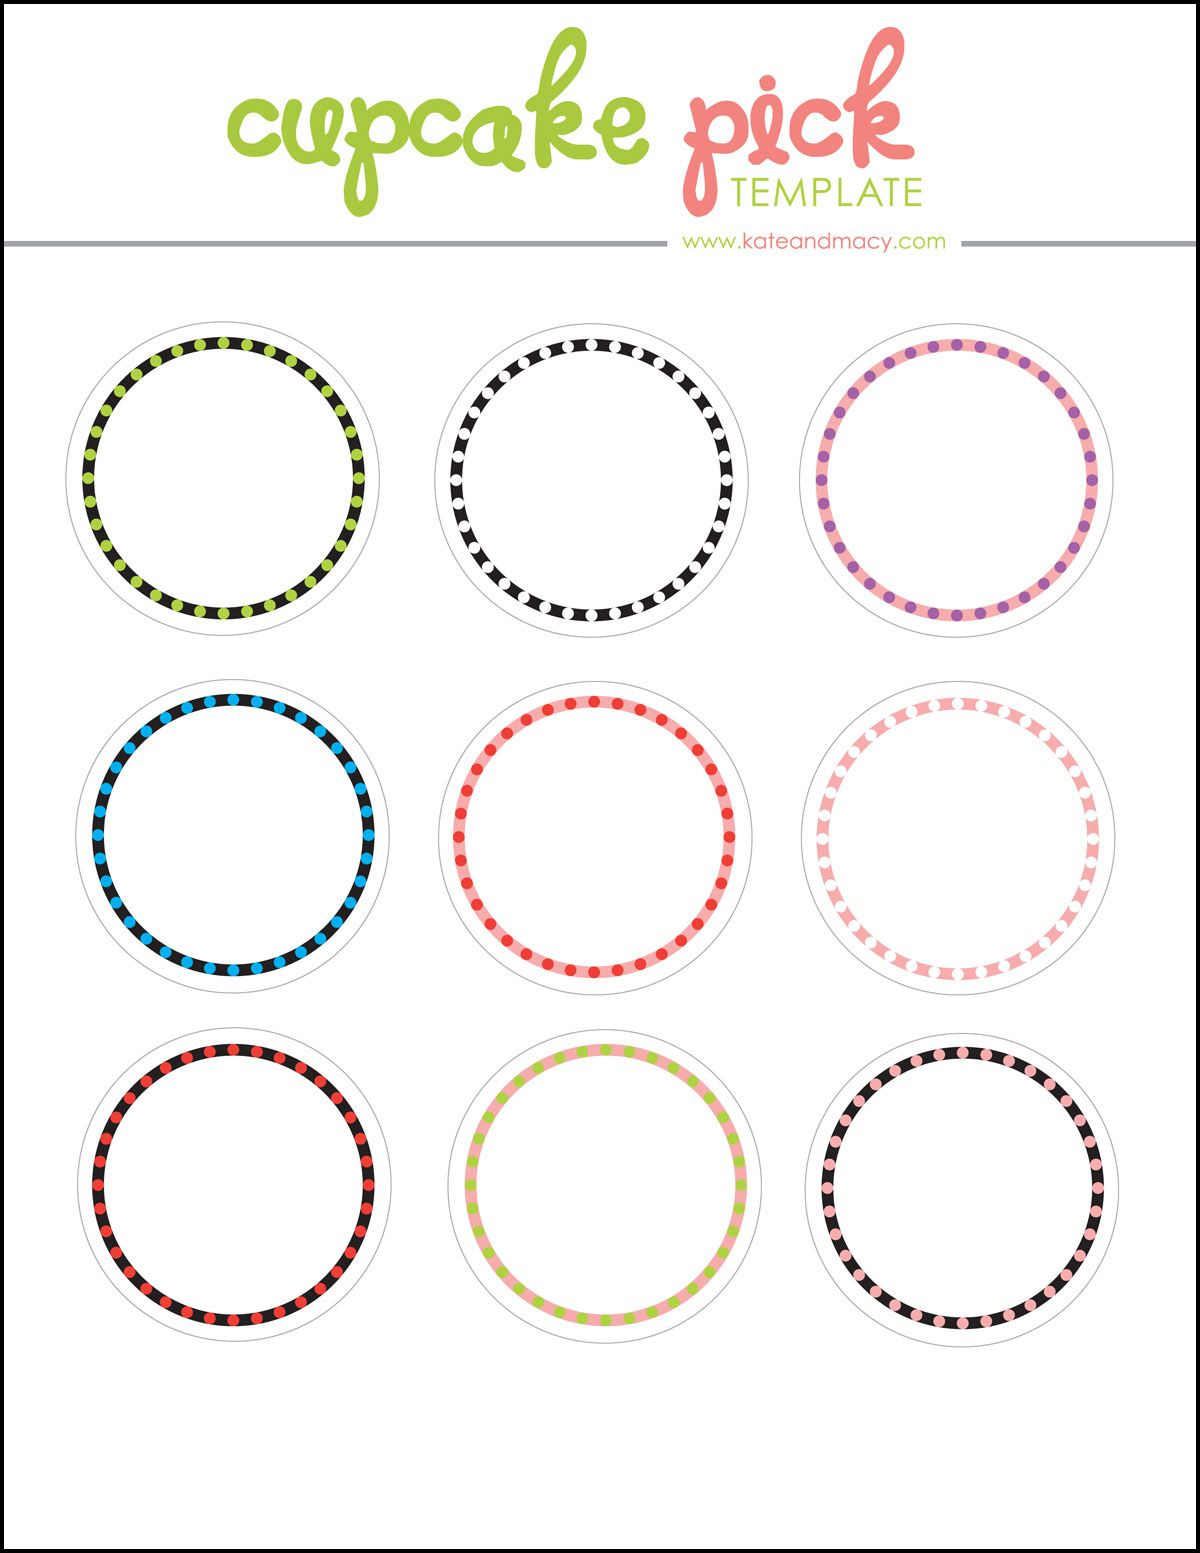 Ive never made or used cupcake picks before but after this 6 best images of free printable cupcake topper templates free printable birthday cupcake topper templates free printable princess cupcake toppers and pronofoot35fo Image collections